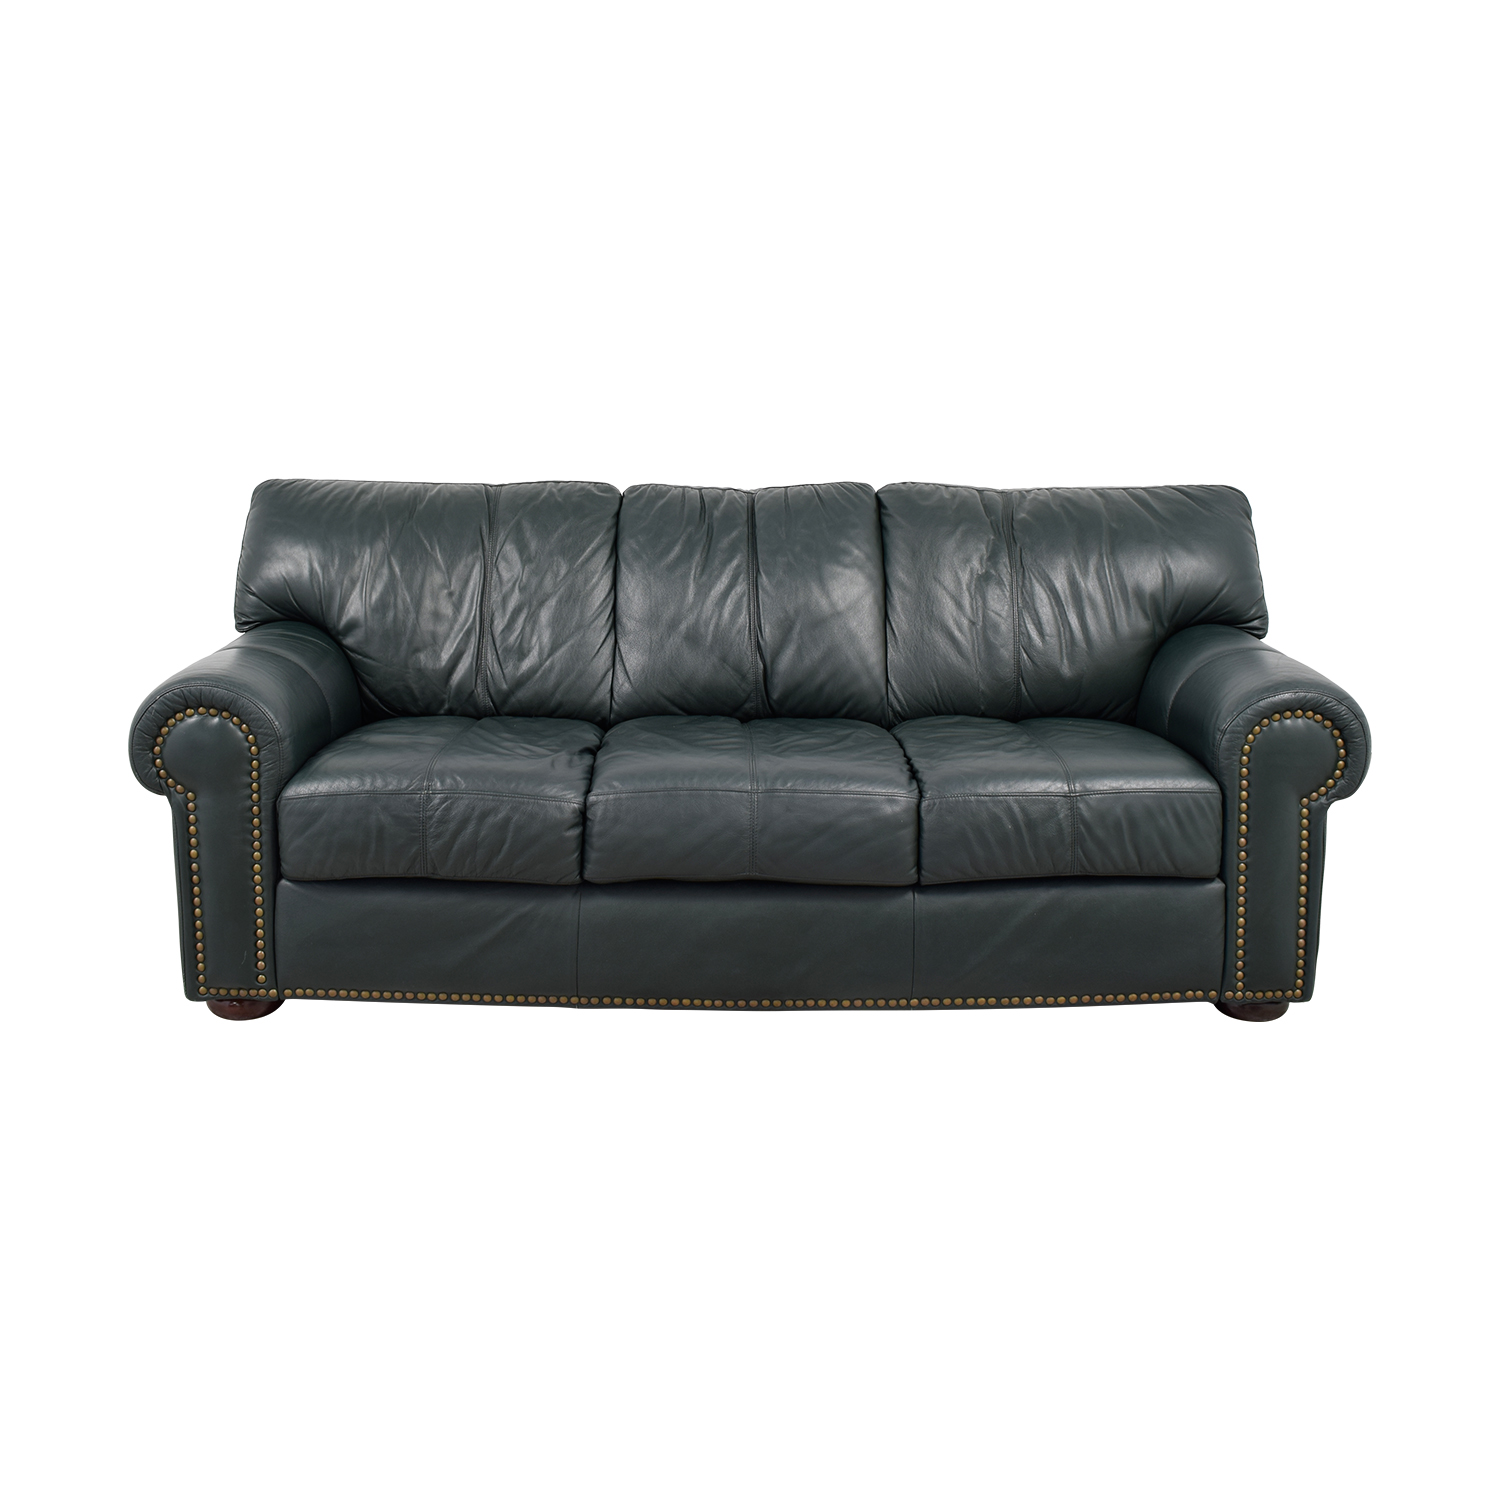 Leather Mart Leather Mart Green Leather Nailhead Rollarm Sofa Classic Sofas